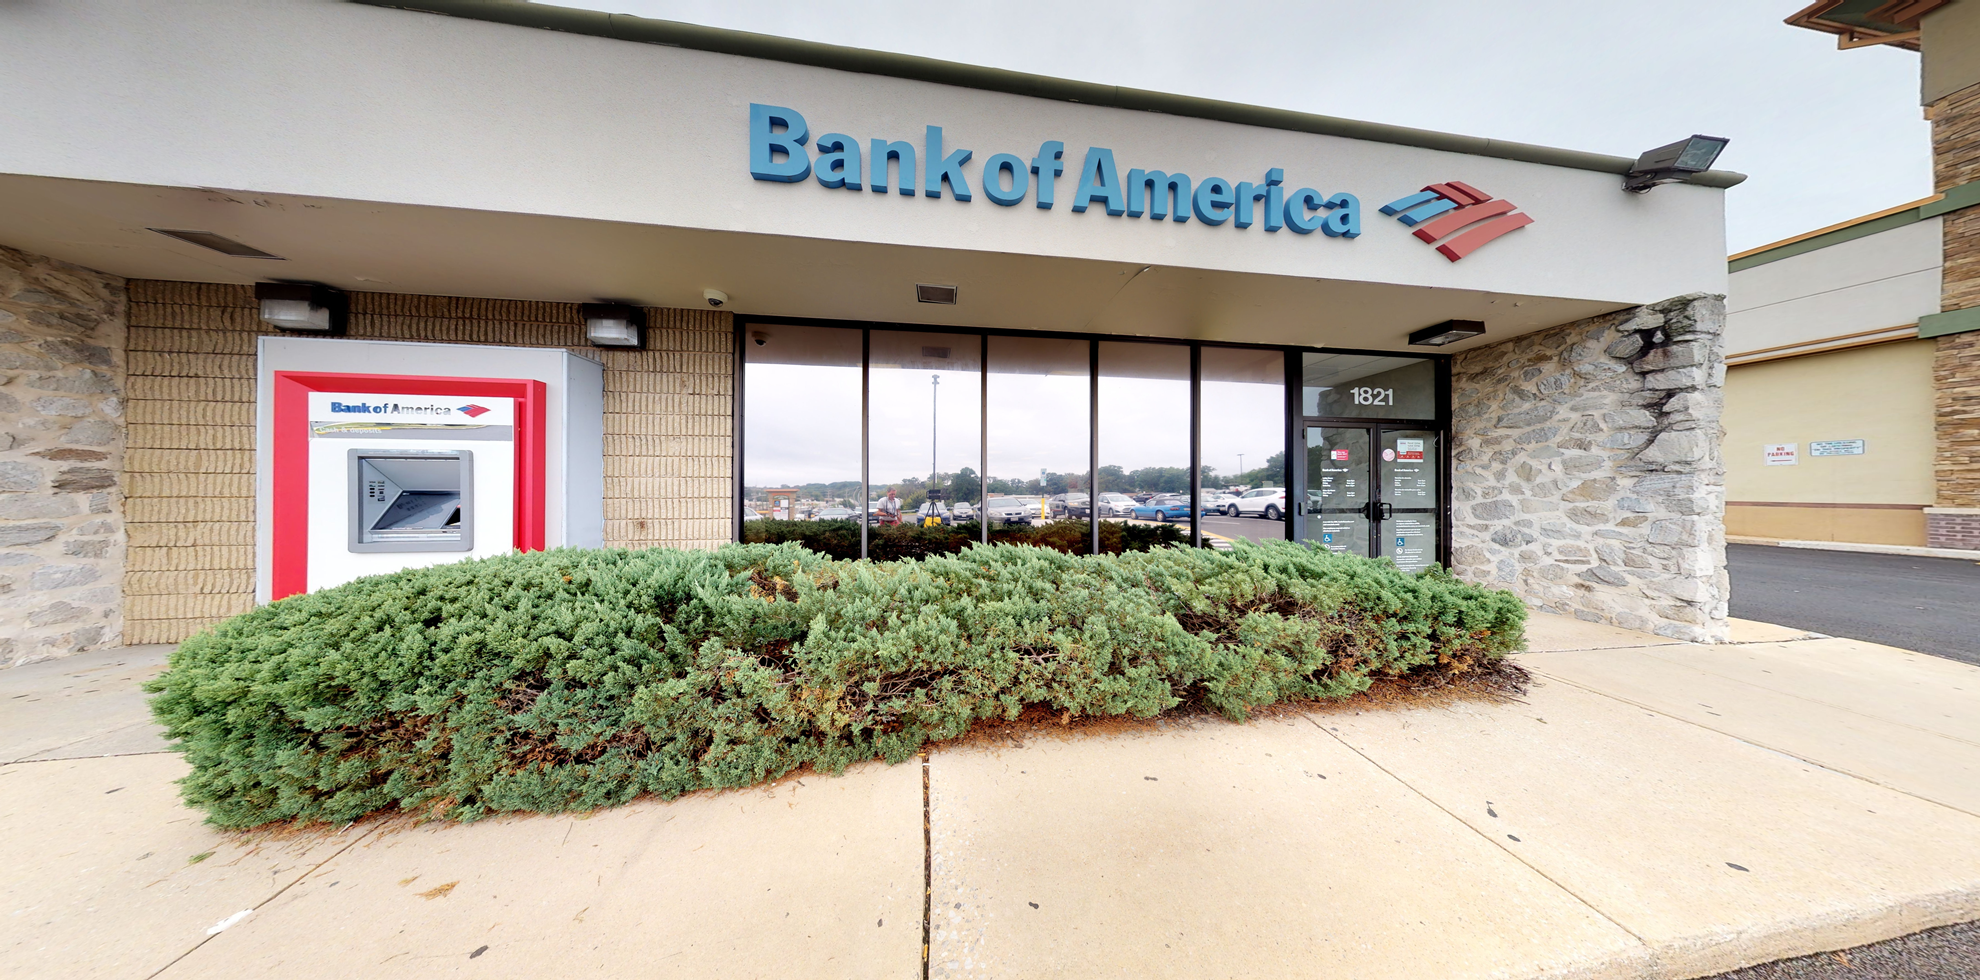 Bank of America financial center with drive-thru ATM   1821 York Rd, Lutherville, MD 21093